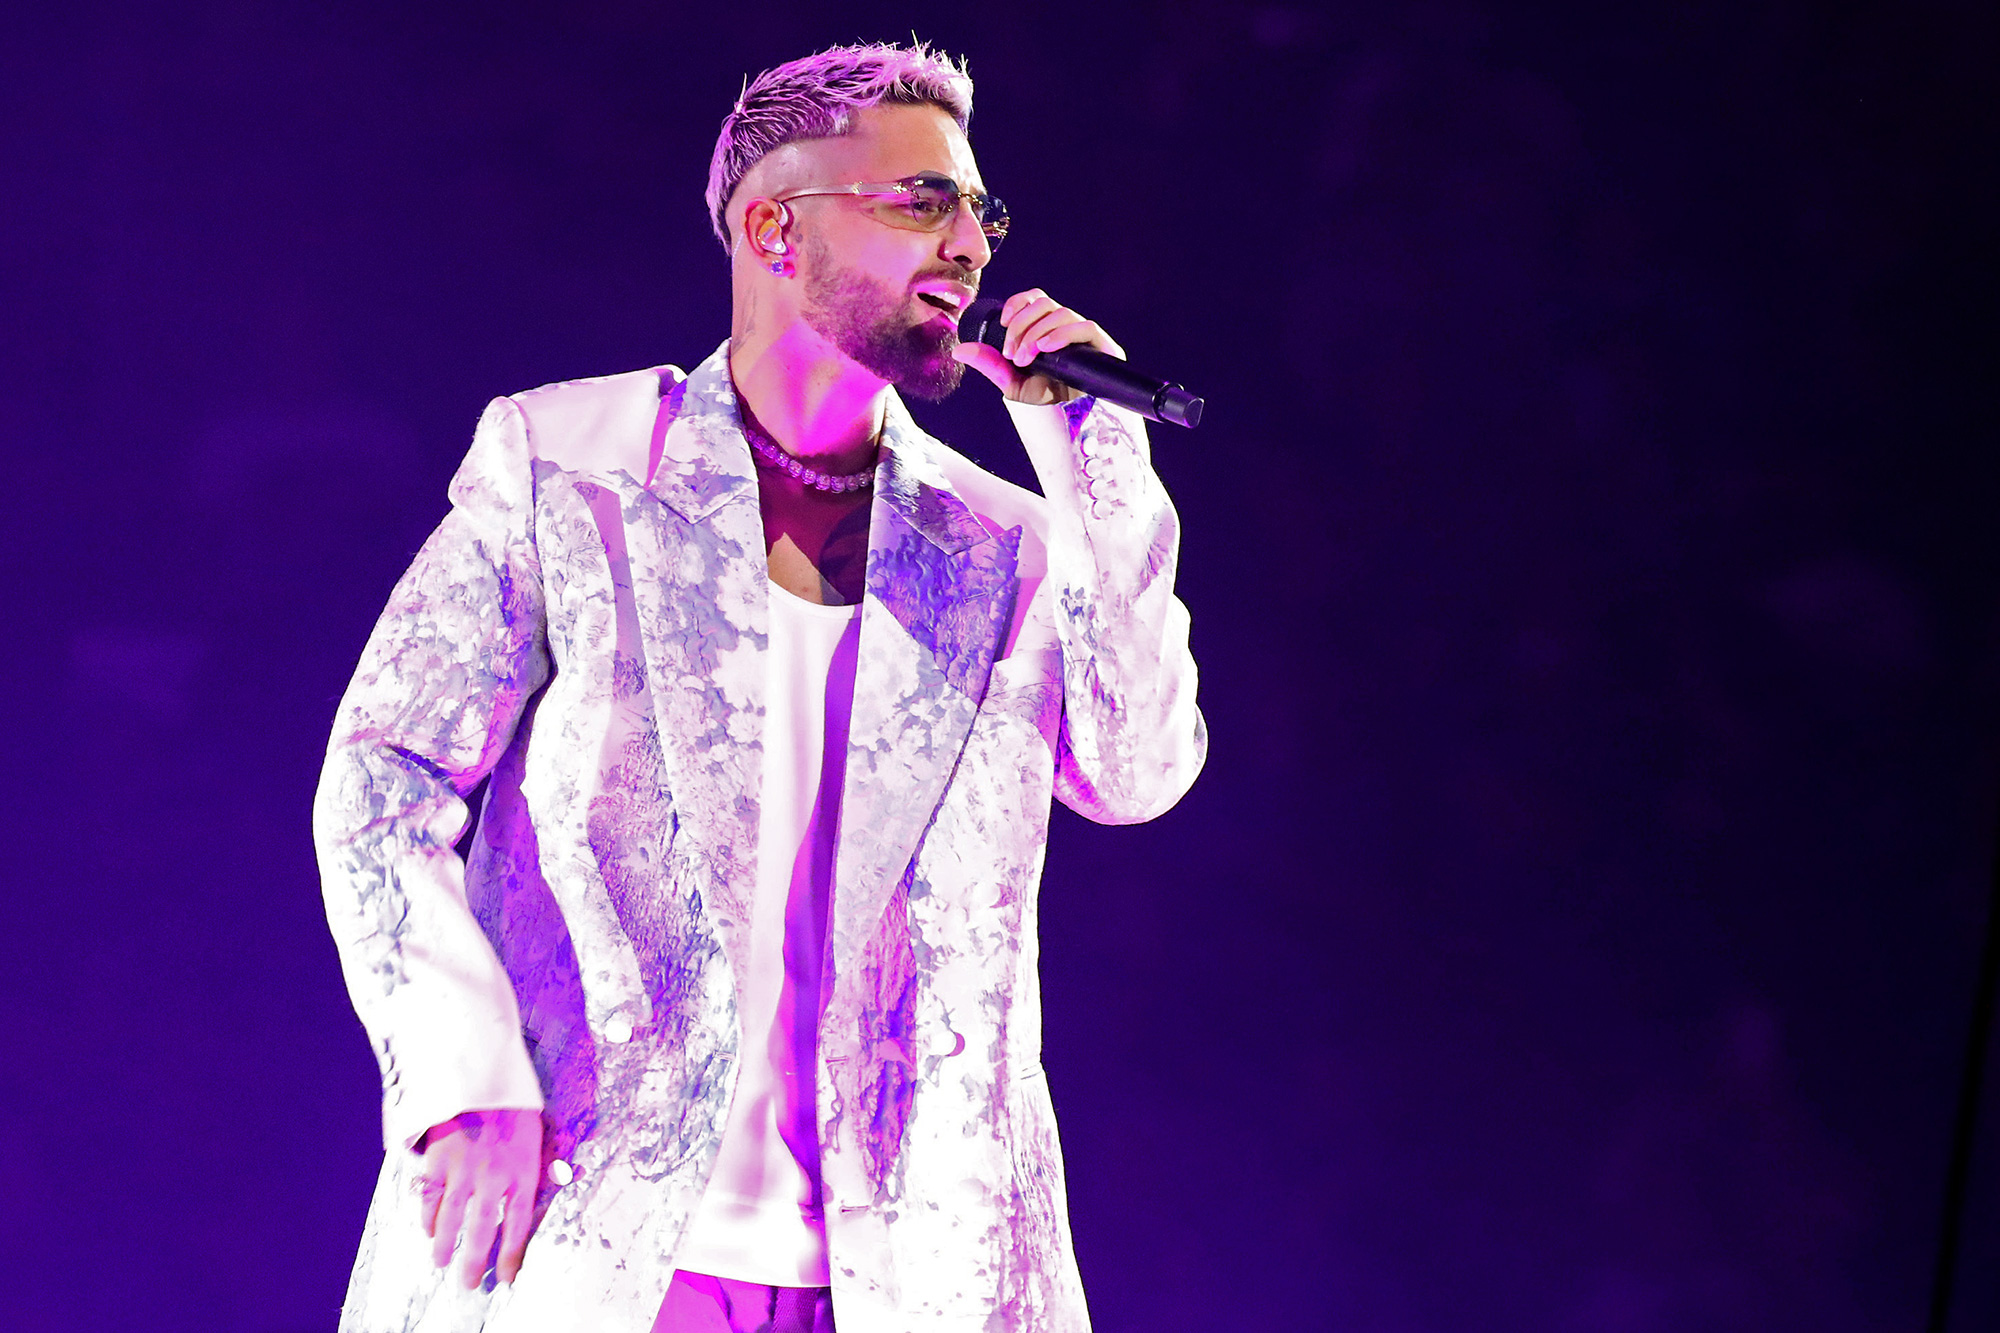 """Maluma performs during the """"Papi Juancho"""" World Tour at Scotiabank Arena on October 21, 2021 in Toronto, Ontario"""